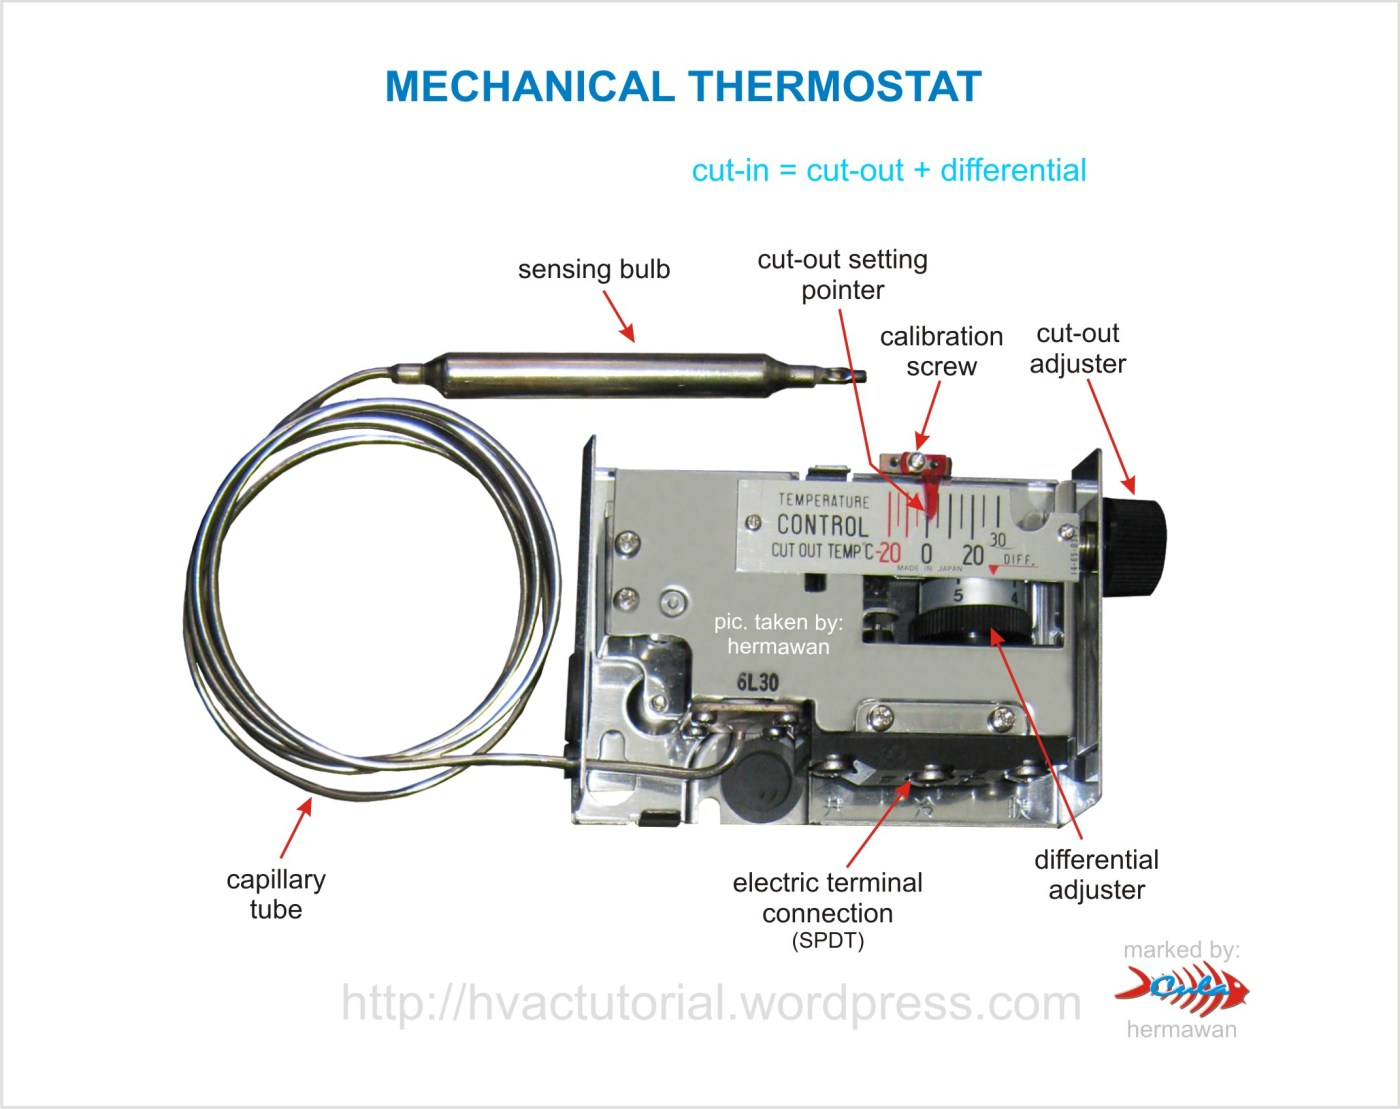 hight resolution of mechanical thermostat hermawan s blog refrigeration and air conditioning systems